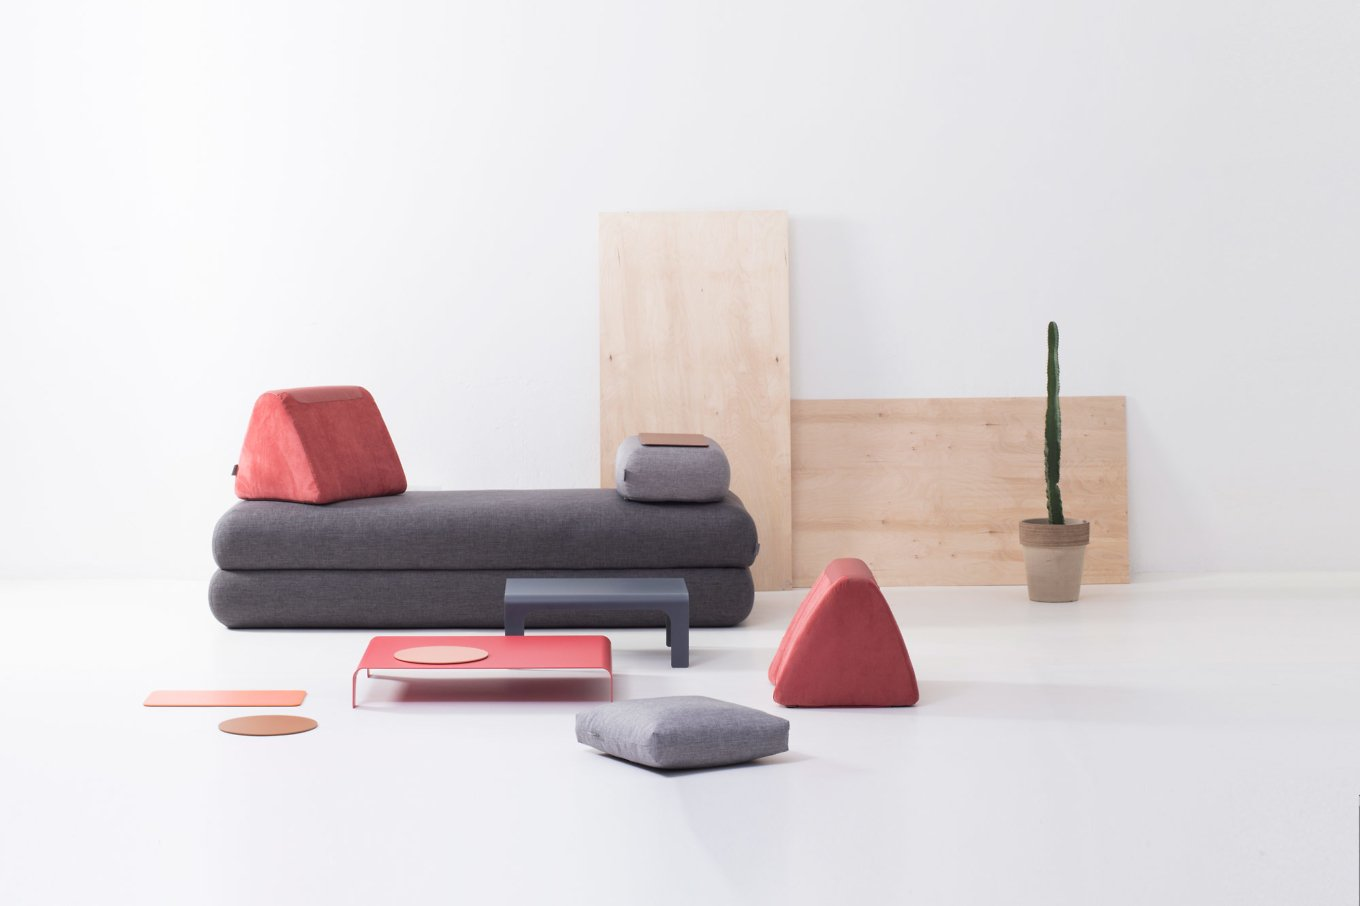 trend furniture. Designs That Embody These Traits Include The Urban Nomad Sofa By Hungarian Brand Hannabi, Multifunctional DiPende Designed Lorenzo Dalla Benetta And Trend Furniture